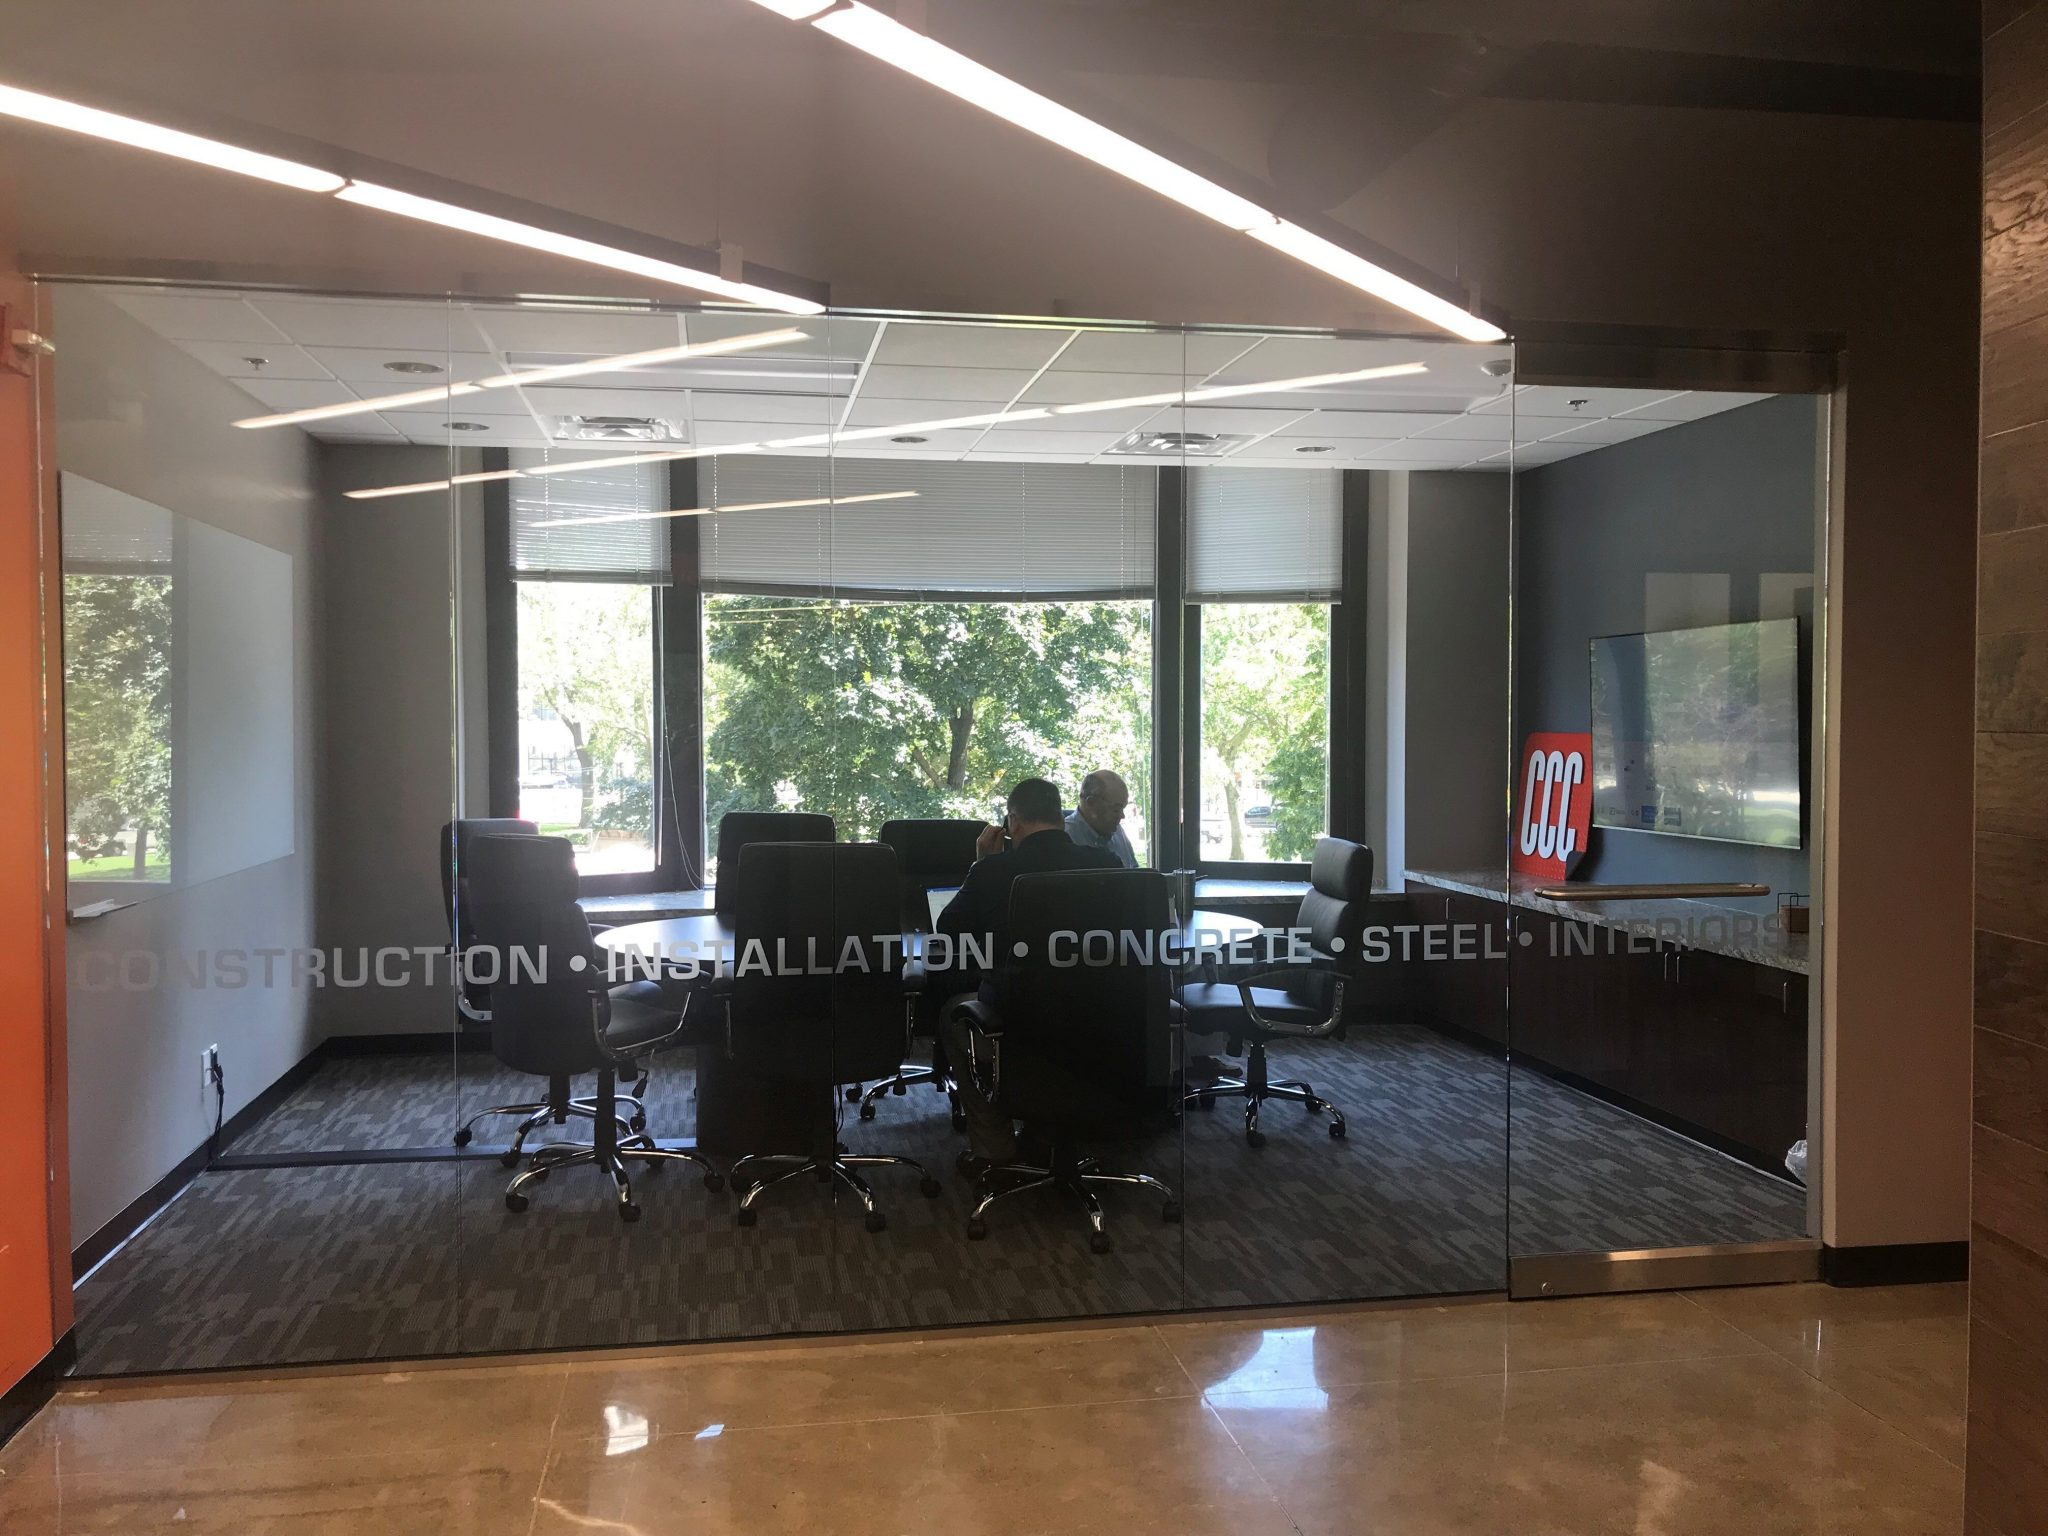 Detroit Office - Press Release - Commercial Contracting